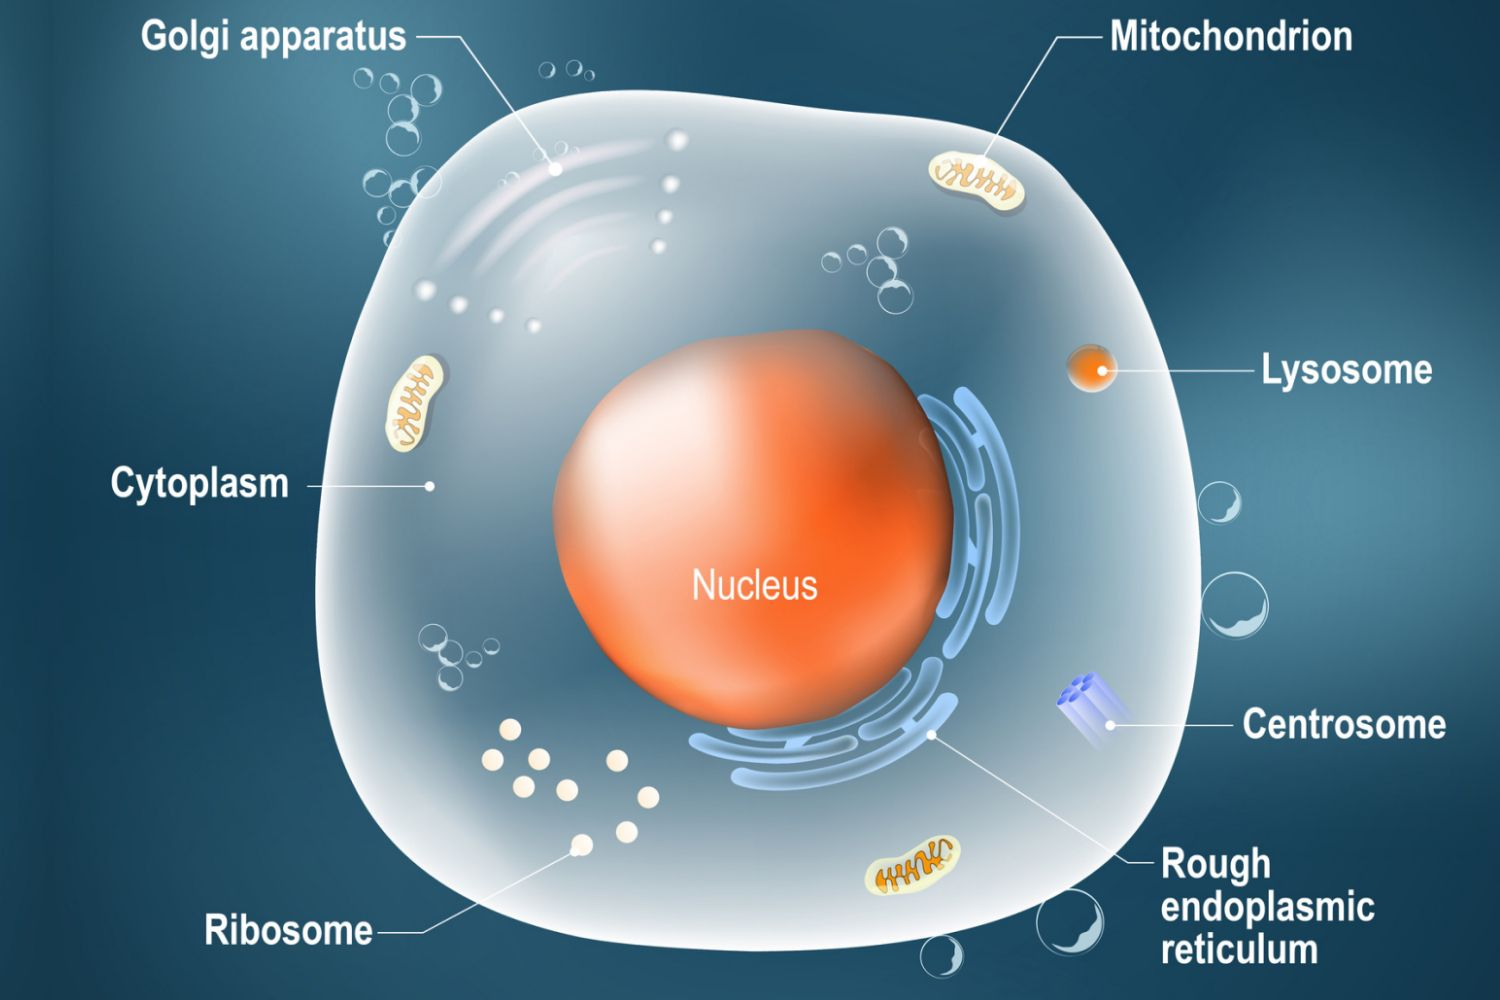 Animal Cells Are Eukaryotic Cells With a Membrane-Bound Nucleus